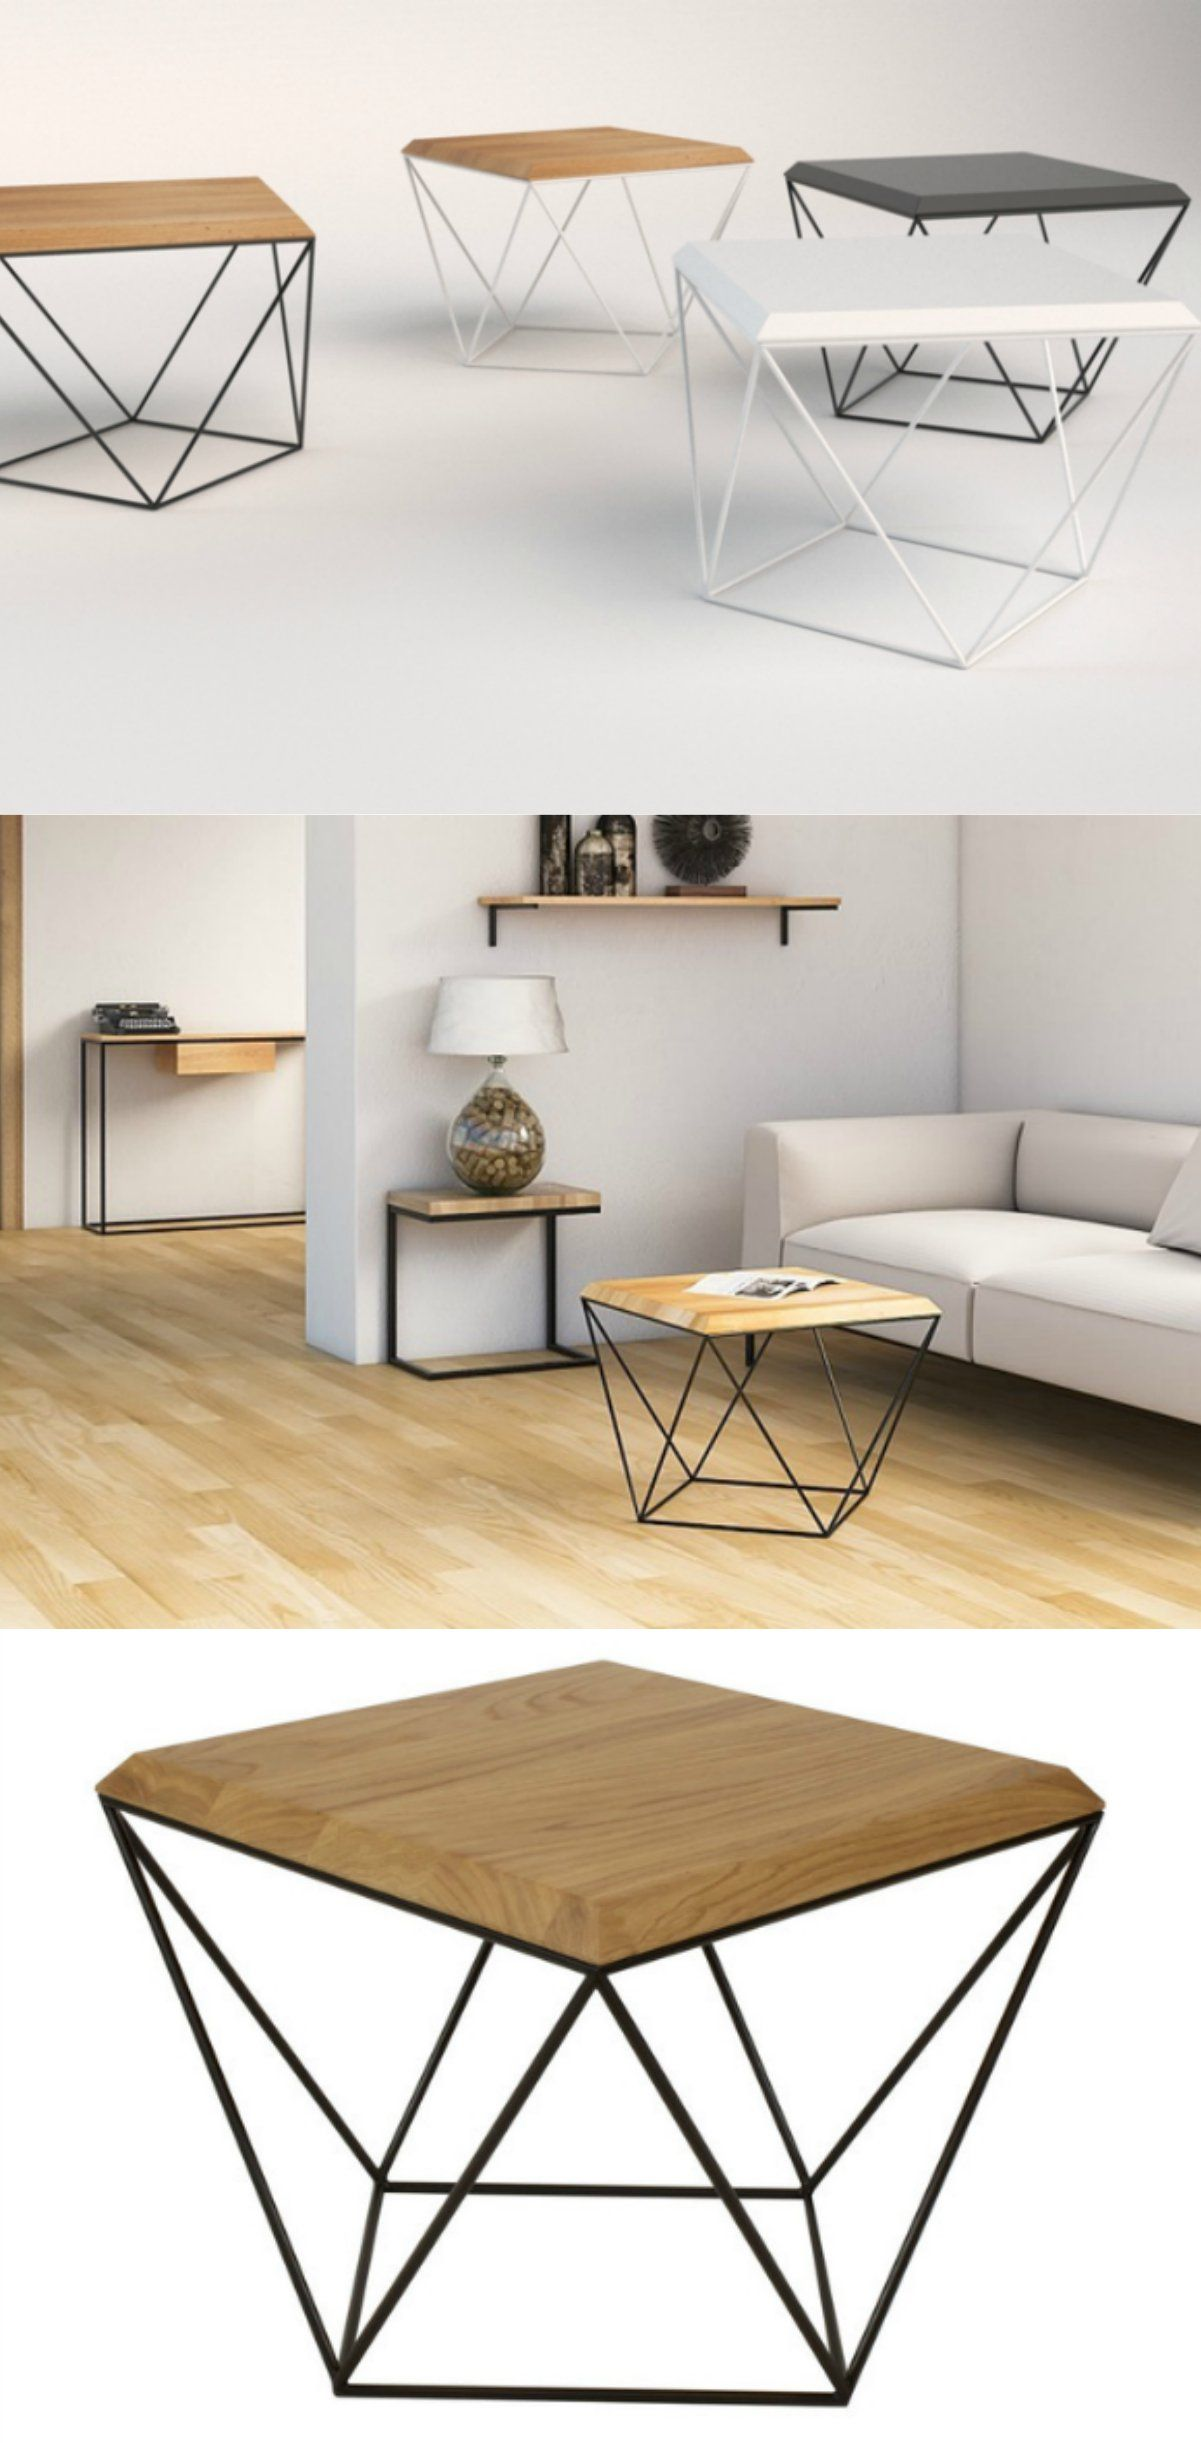 Tulip Wood Is A Minimalist Coffee Table With An Intriguing Geometric Silhouette Just Turn It 90 Degrees And Watch Get Totally Diffe Shape